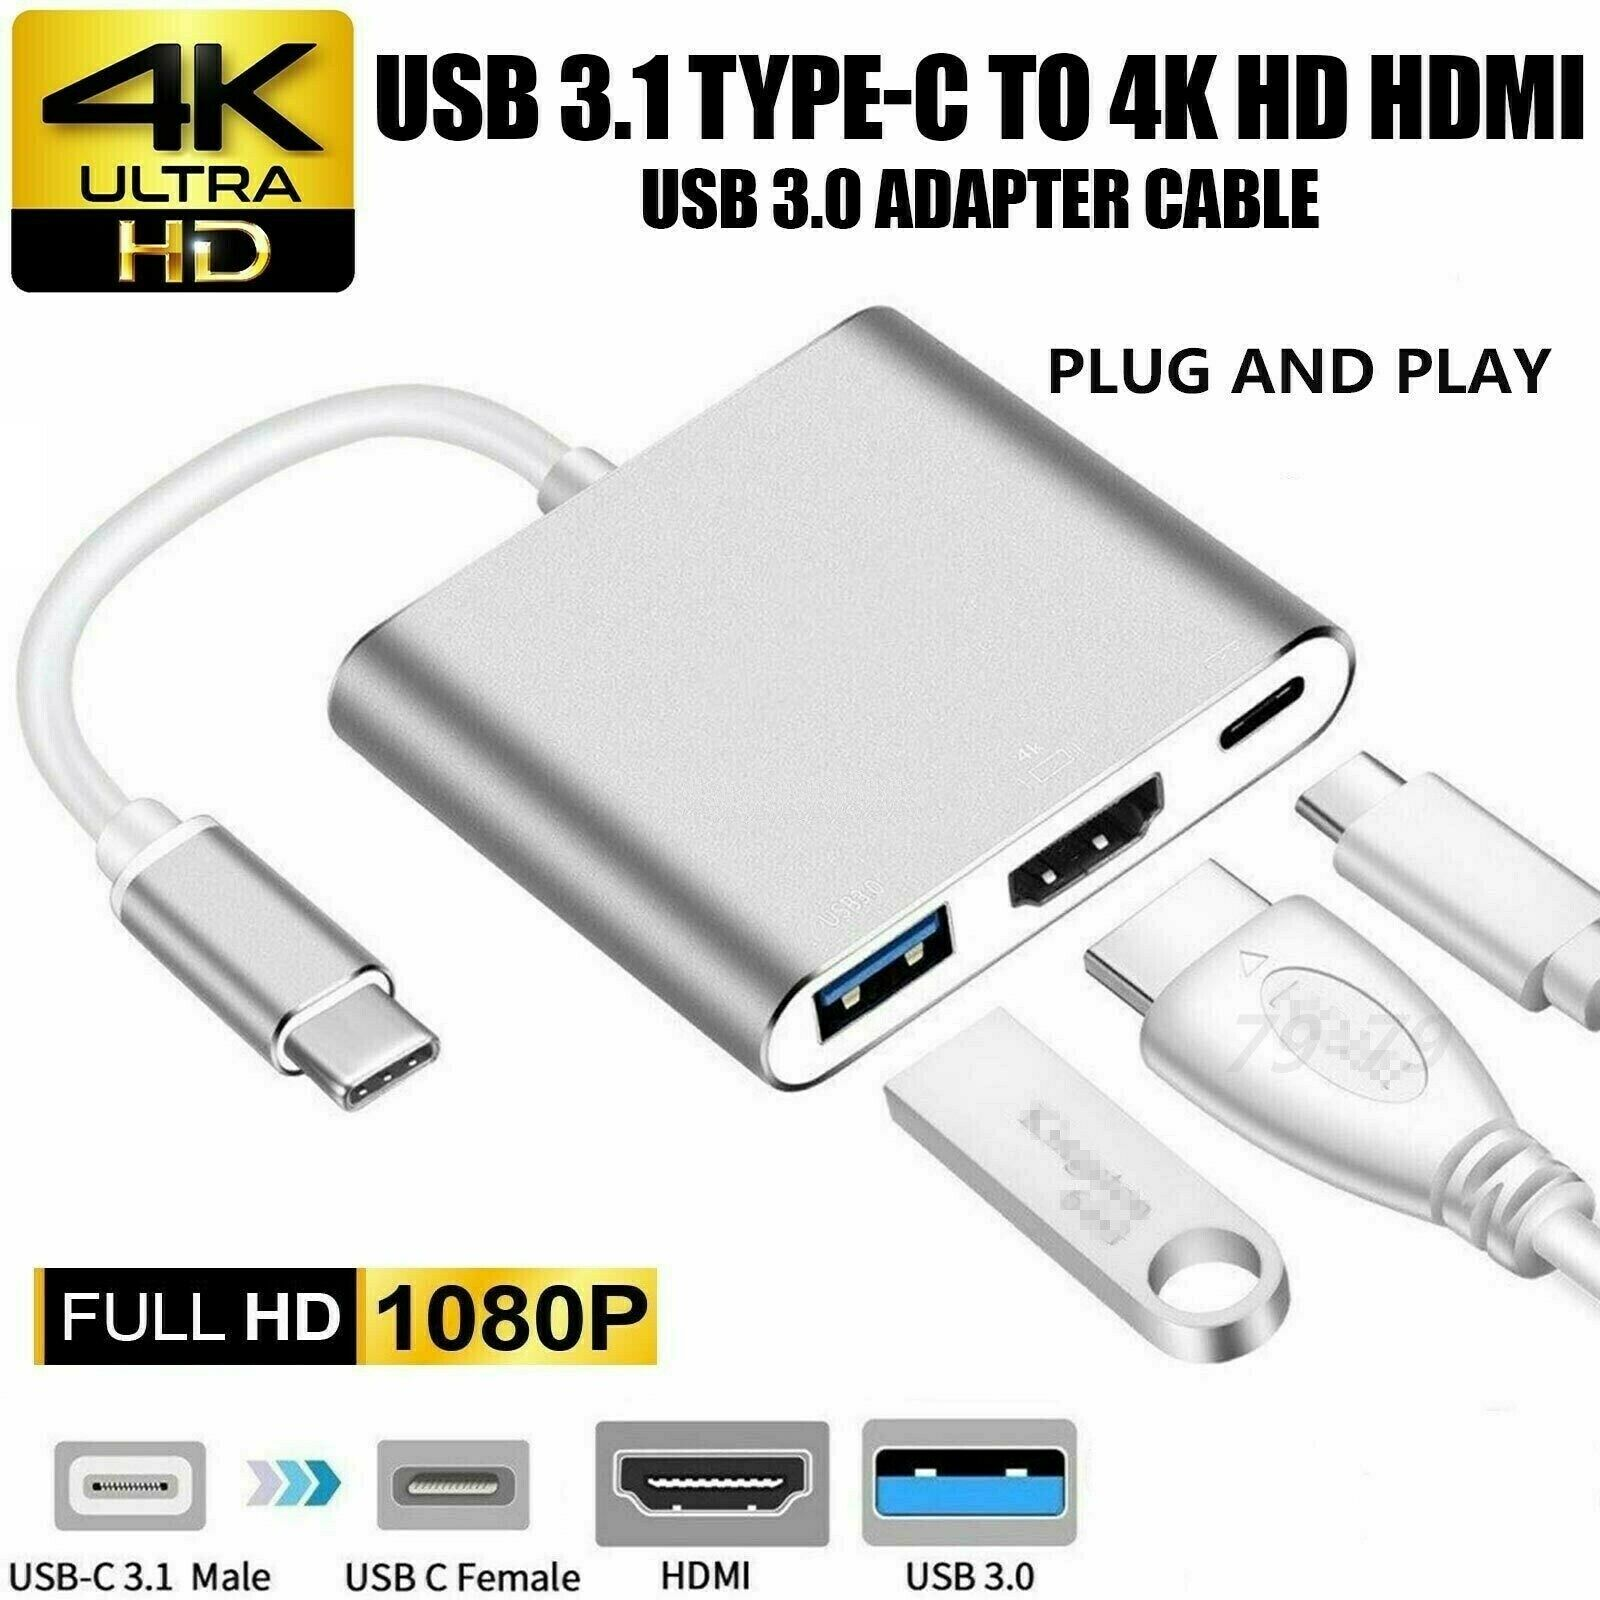 HF-UCTUCH: 3 in 1 USB 3.1 Type C To HDMI USB 3.0 HUB USB-C multi-port Adapter Dongle Dock Cable for Macbook Pro